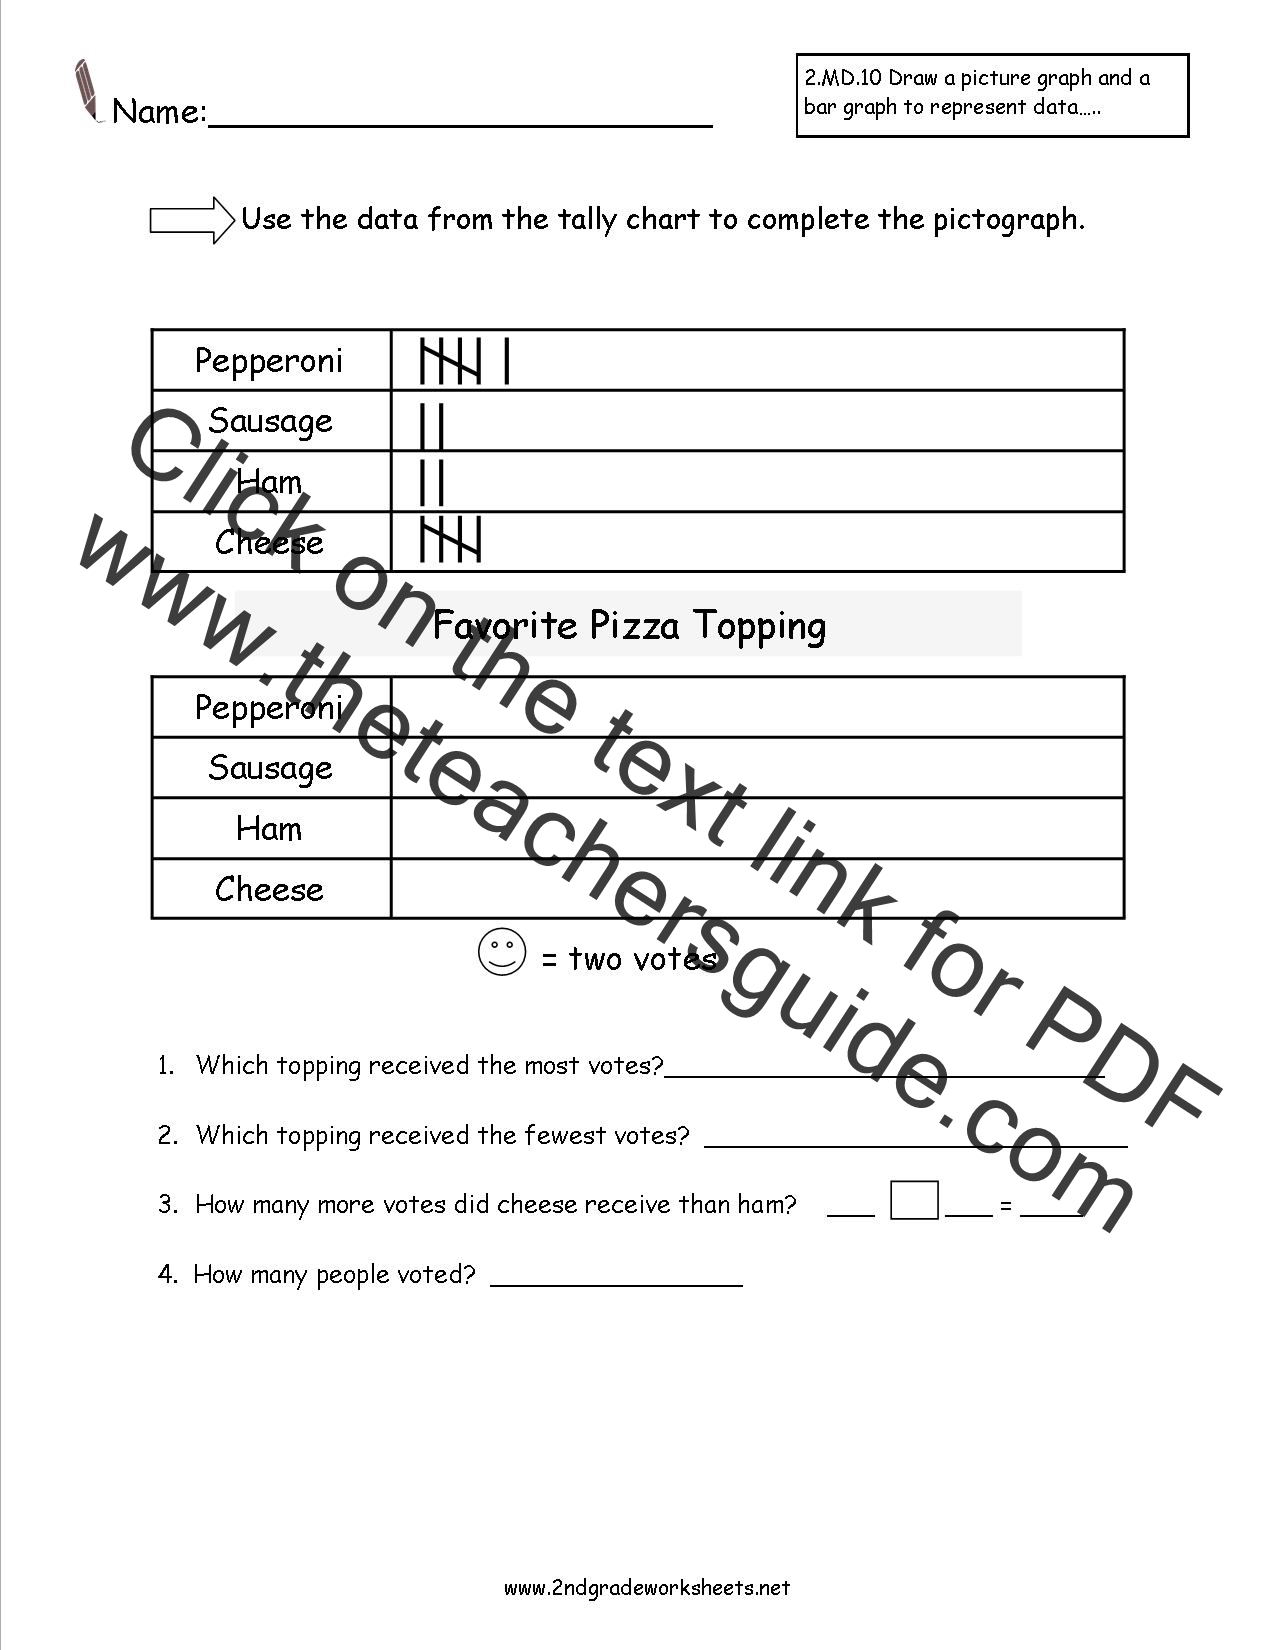 Second grade reading and creating pictograph worksheets favorite pizza topping pictograph ibookread ePUb